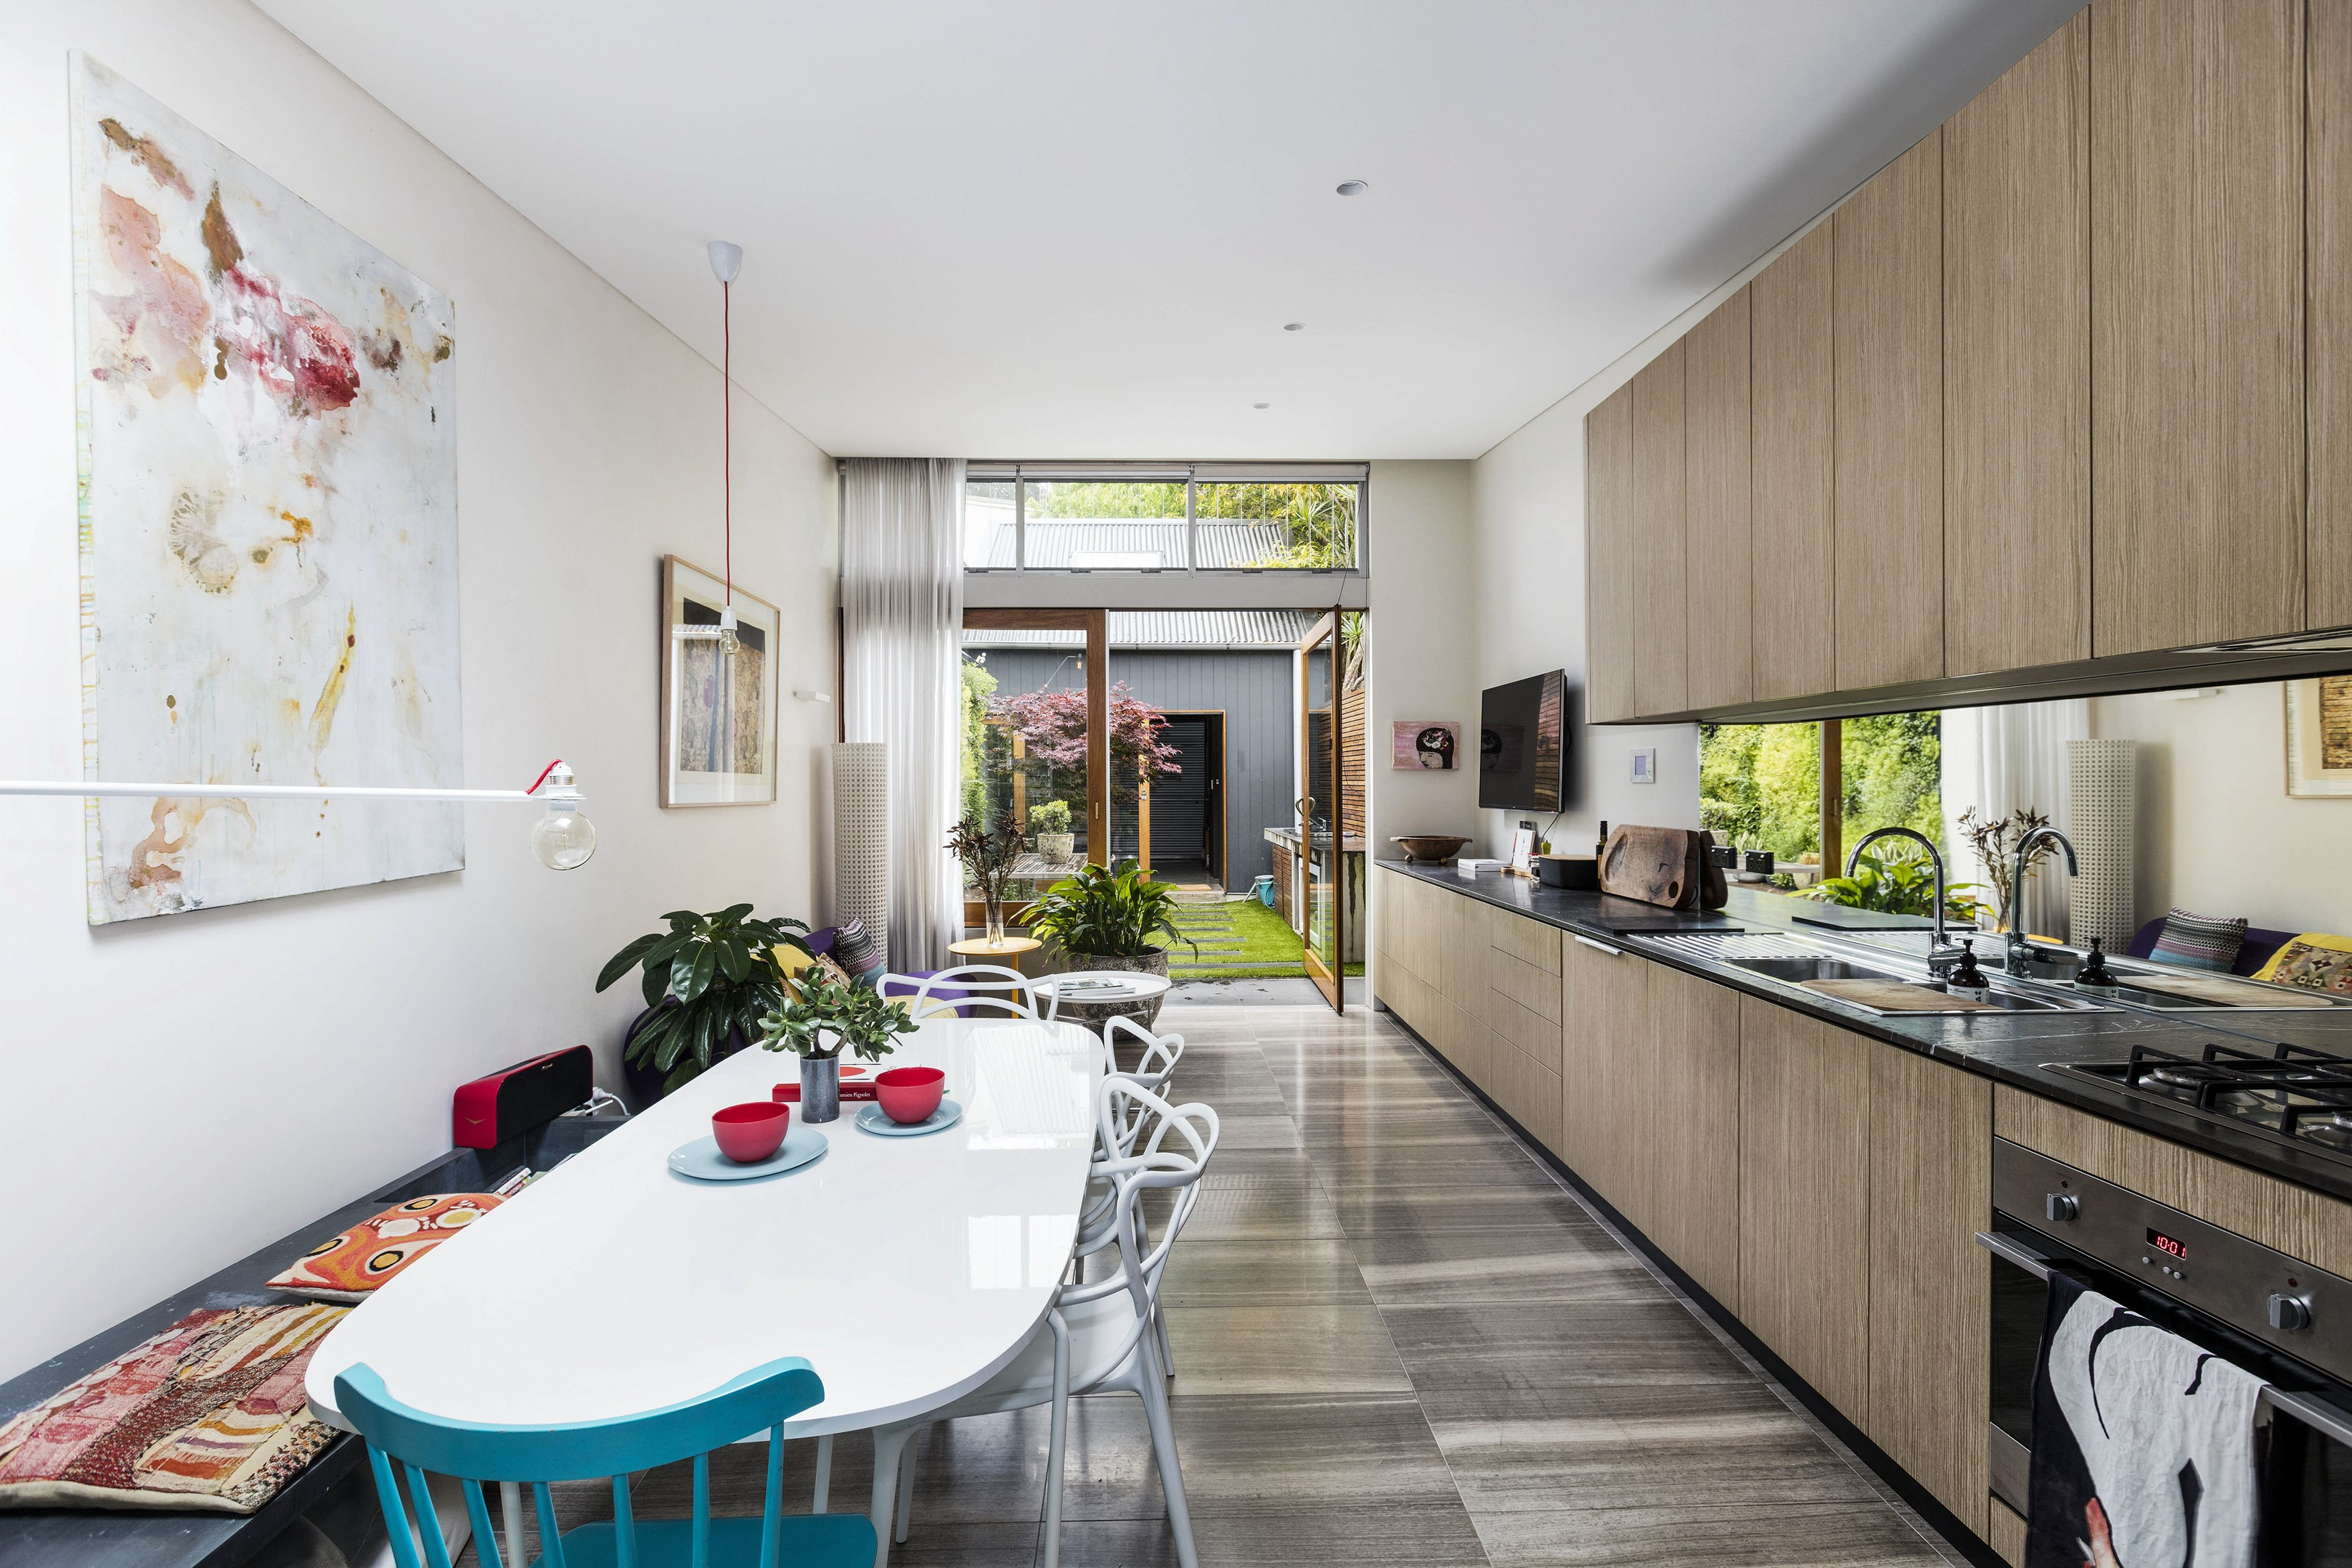 Property Report for 95 Gowrie Street, Newtown NSW 2042